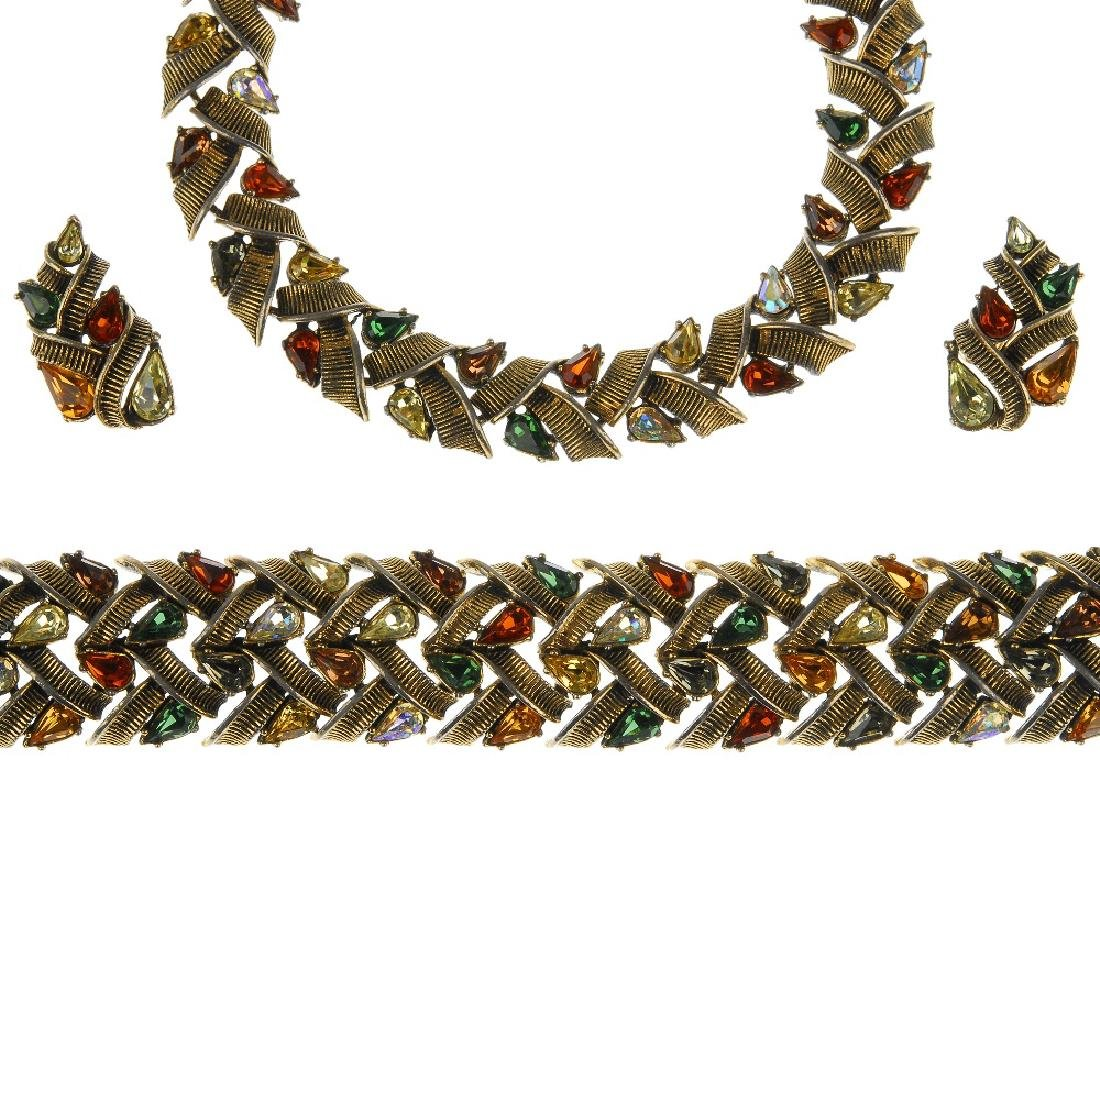 Fifteen items of Jewelcraft and Monet jewellery. To